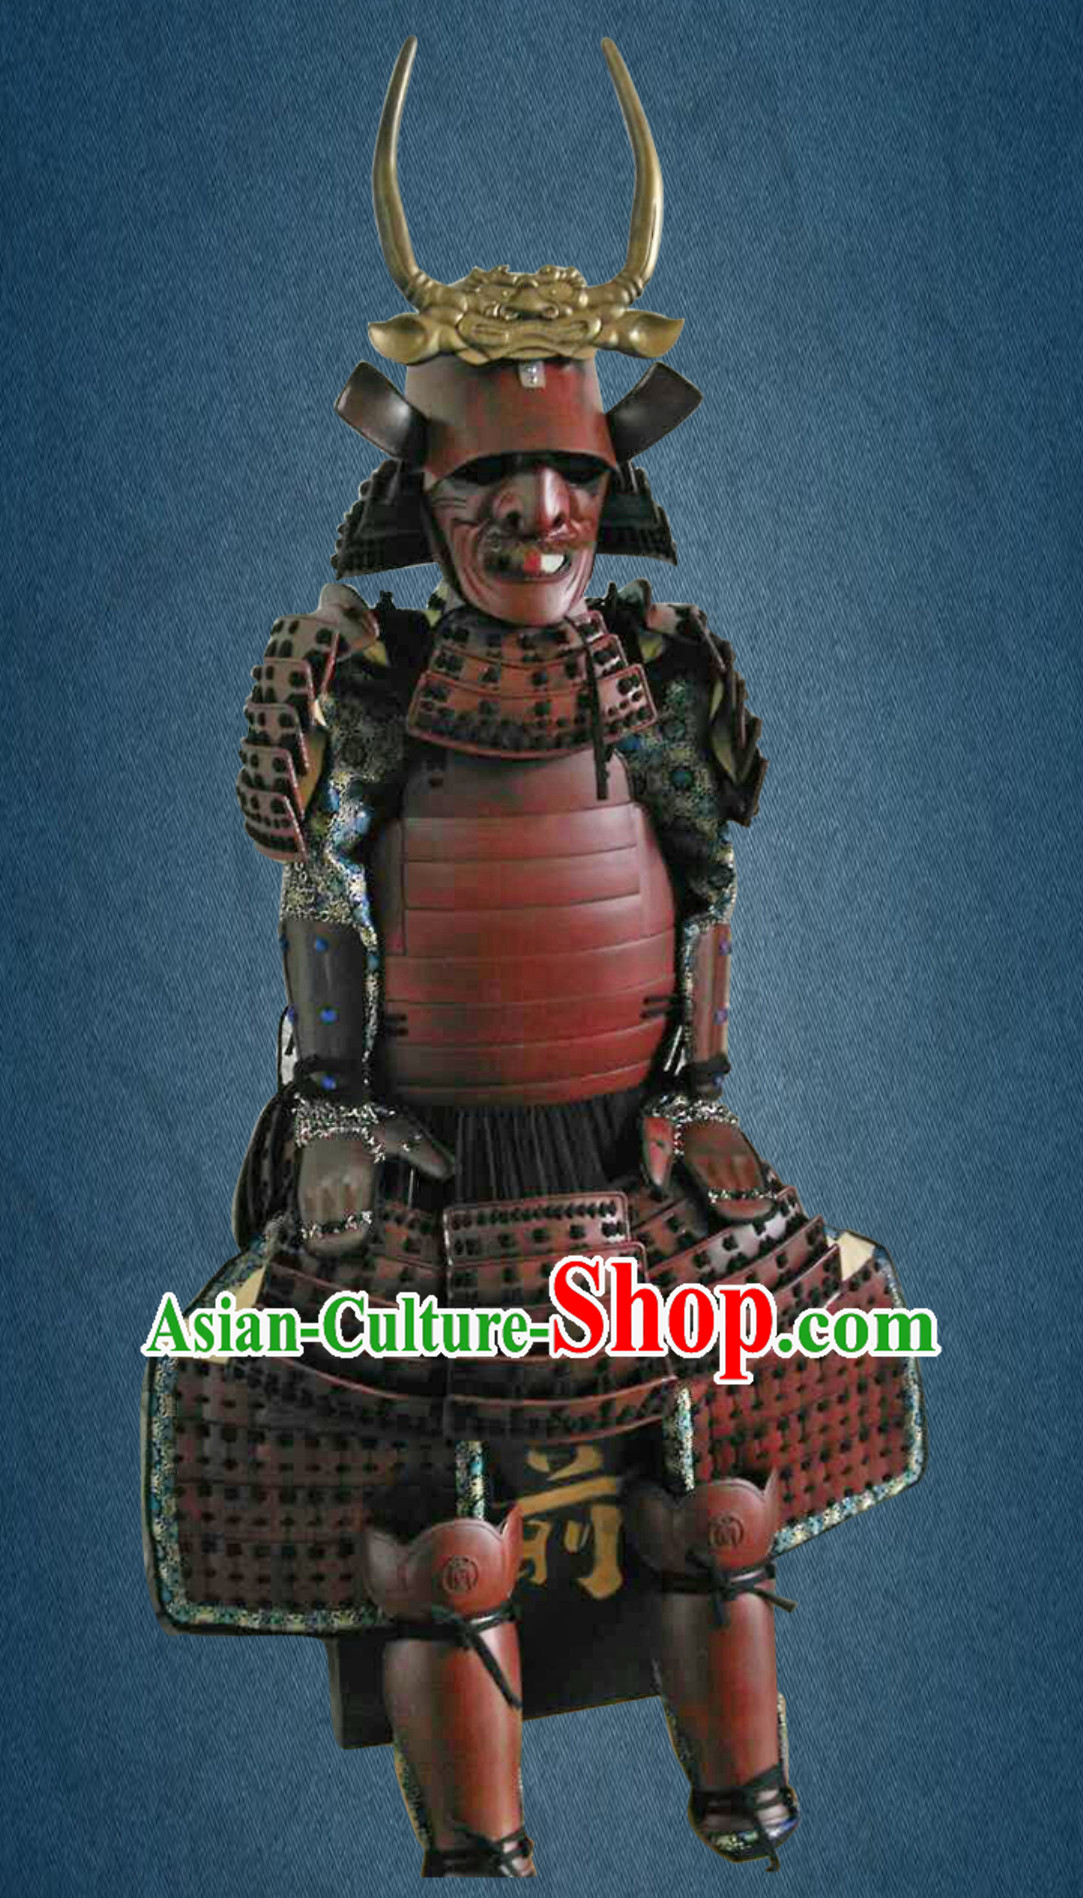 Ancient Asian Classical Japanese Samurai Armor Tatto Buy Replica Authentic Samurai Outfit Parts Clothes Complete Set for Men for Sale